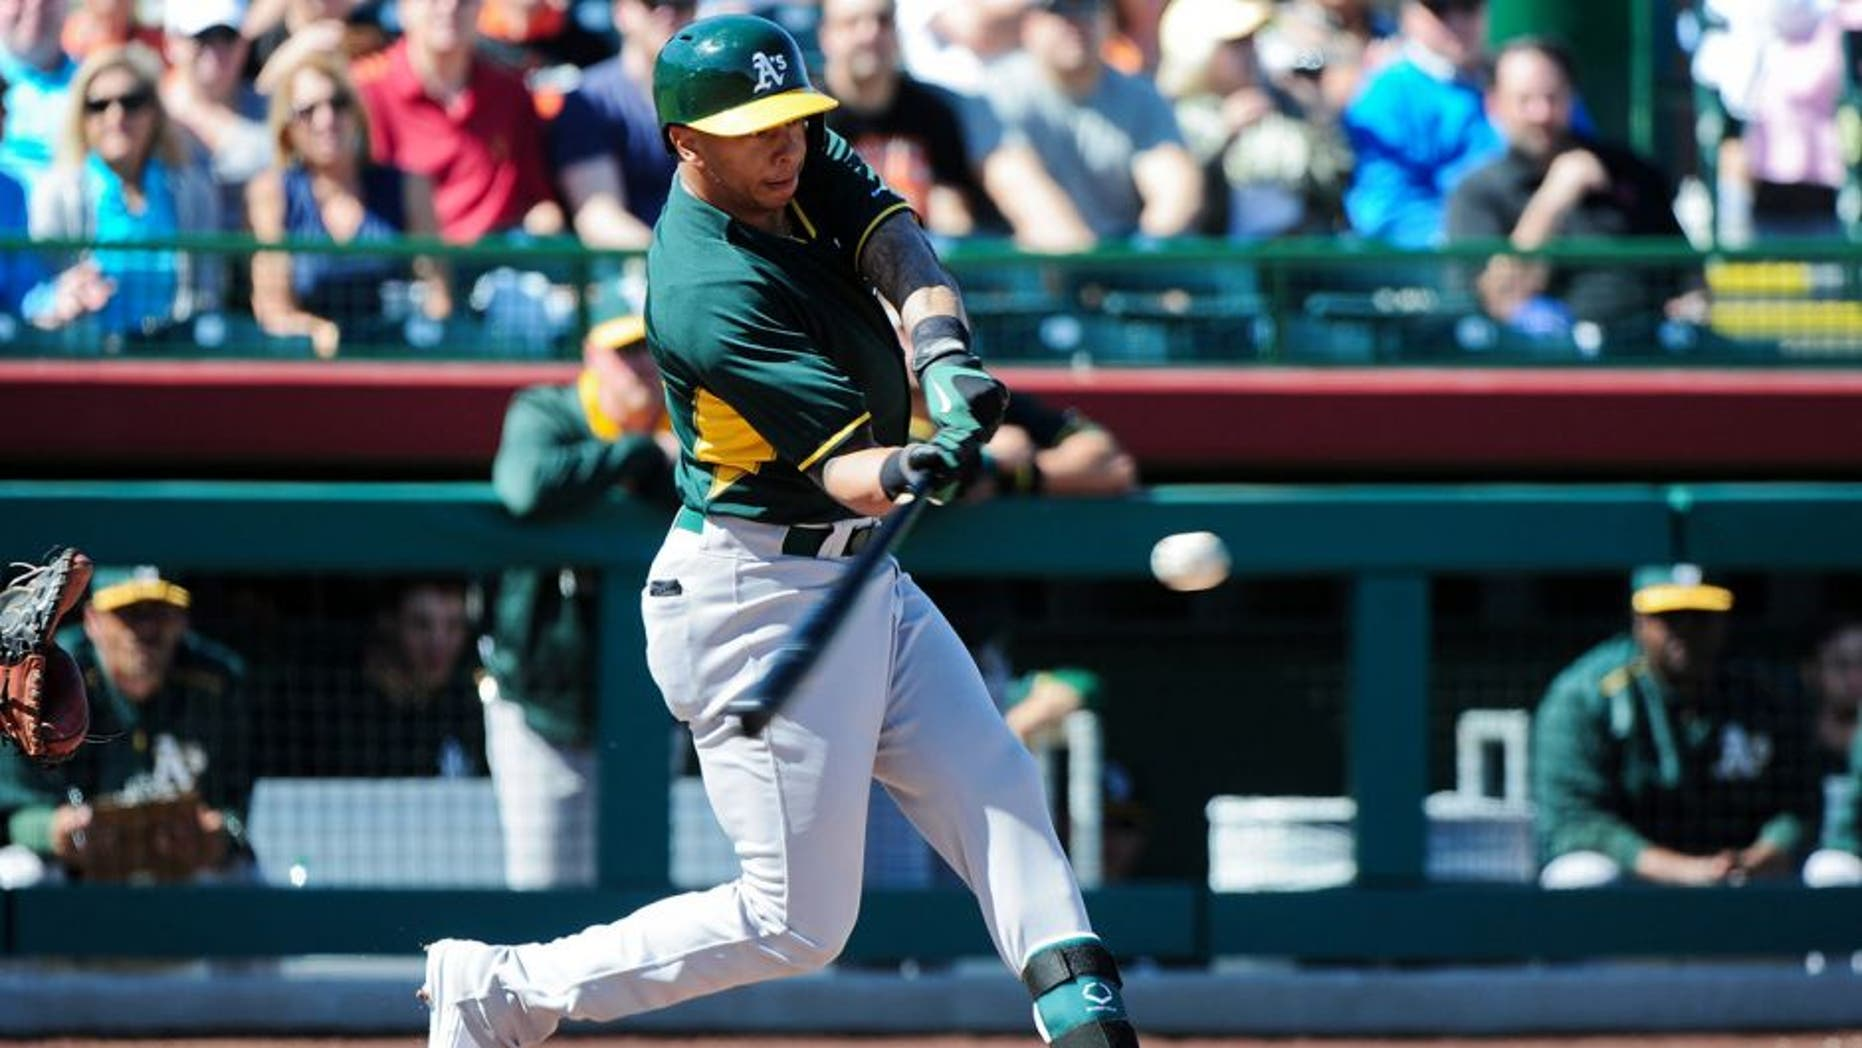 Mar 4, 2015; Scottsdale, AZ, USA; Oakland Athletics second baseman Tyler Ladendorf (25) flies out during the first inning against the San Francisco Giants during a spring training baseball game at Scottsdale Stadium. Mandatory Credit: Matt Kartozian-USA TODAY Sports